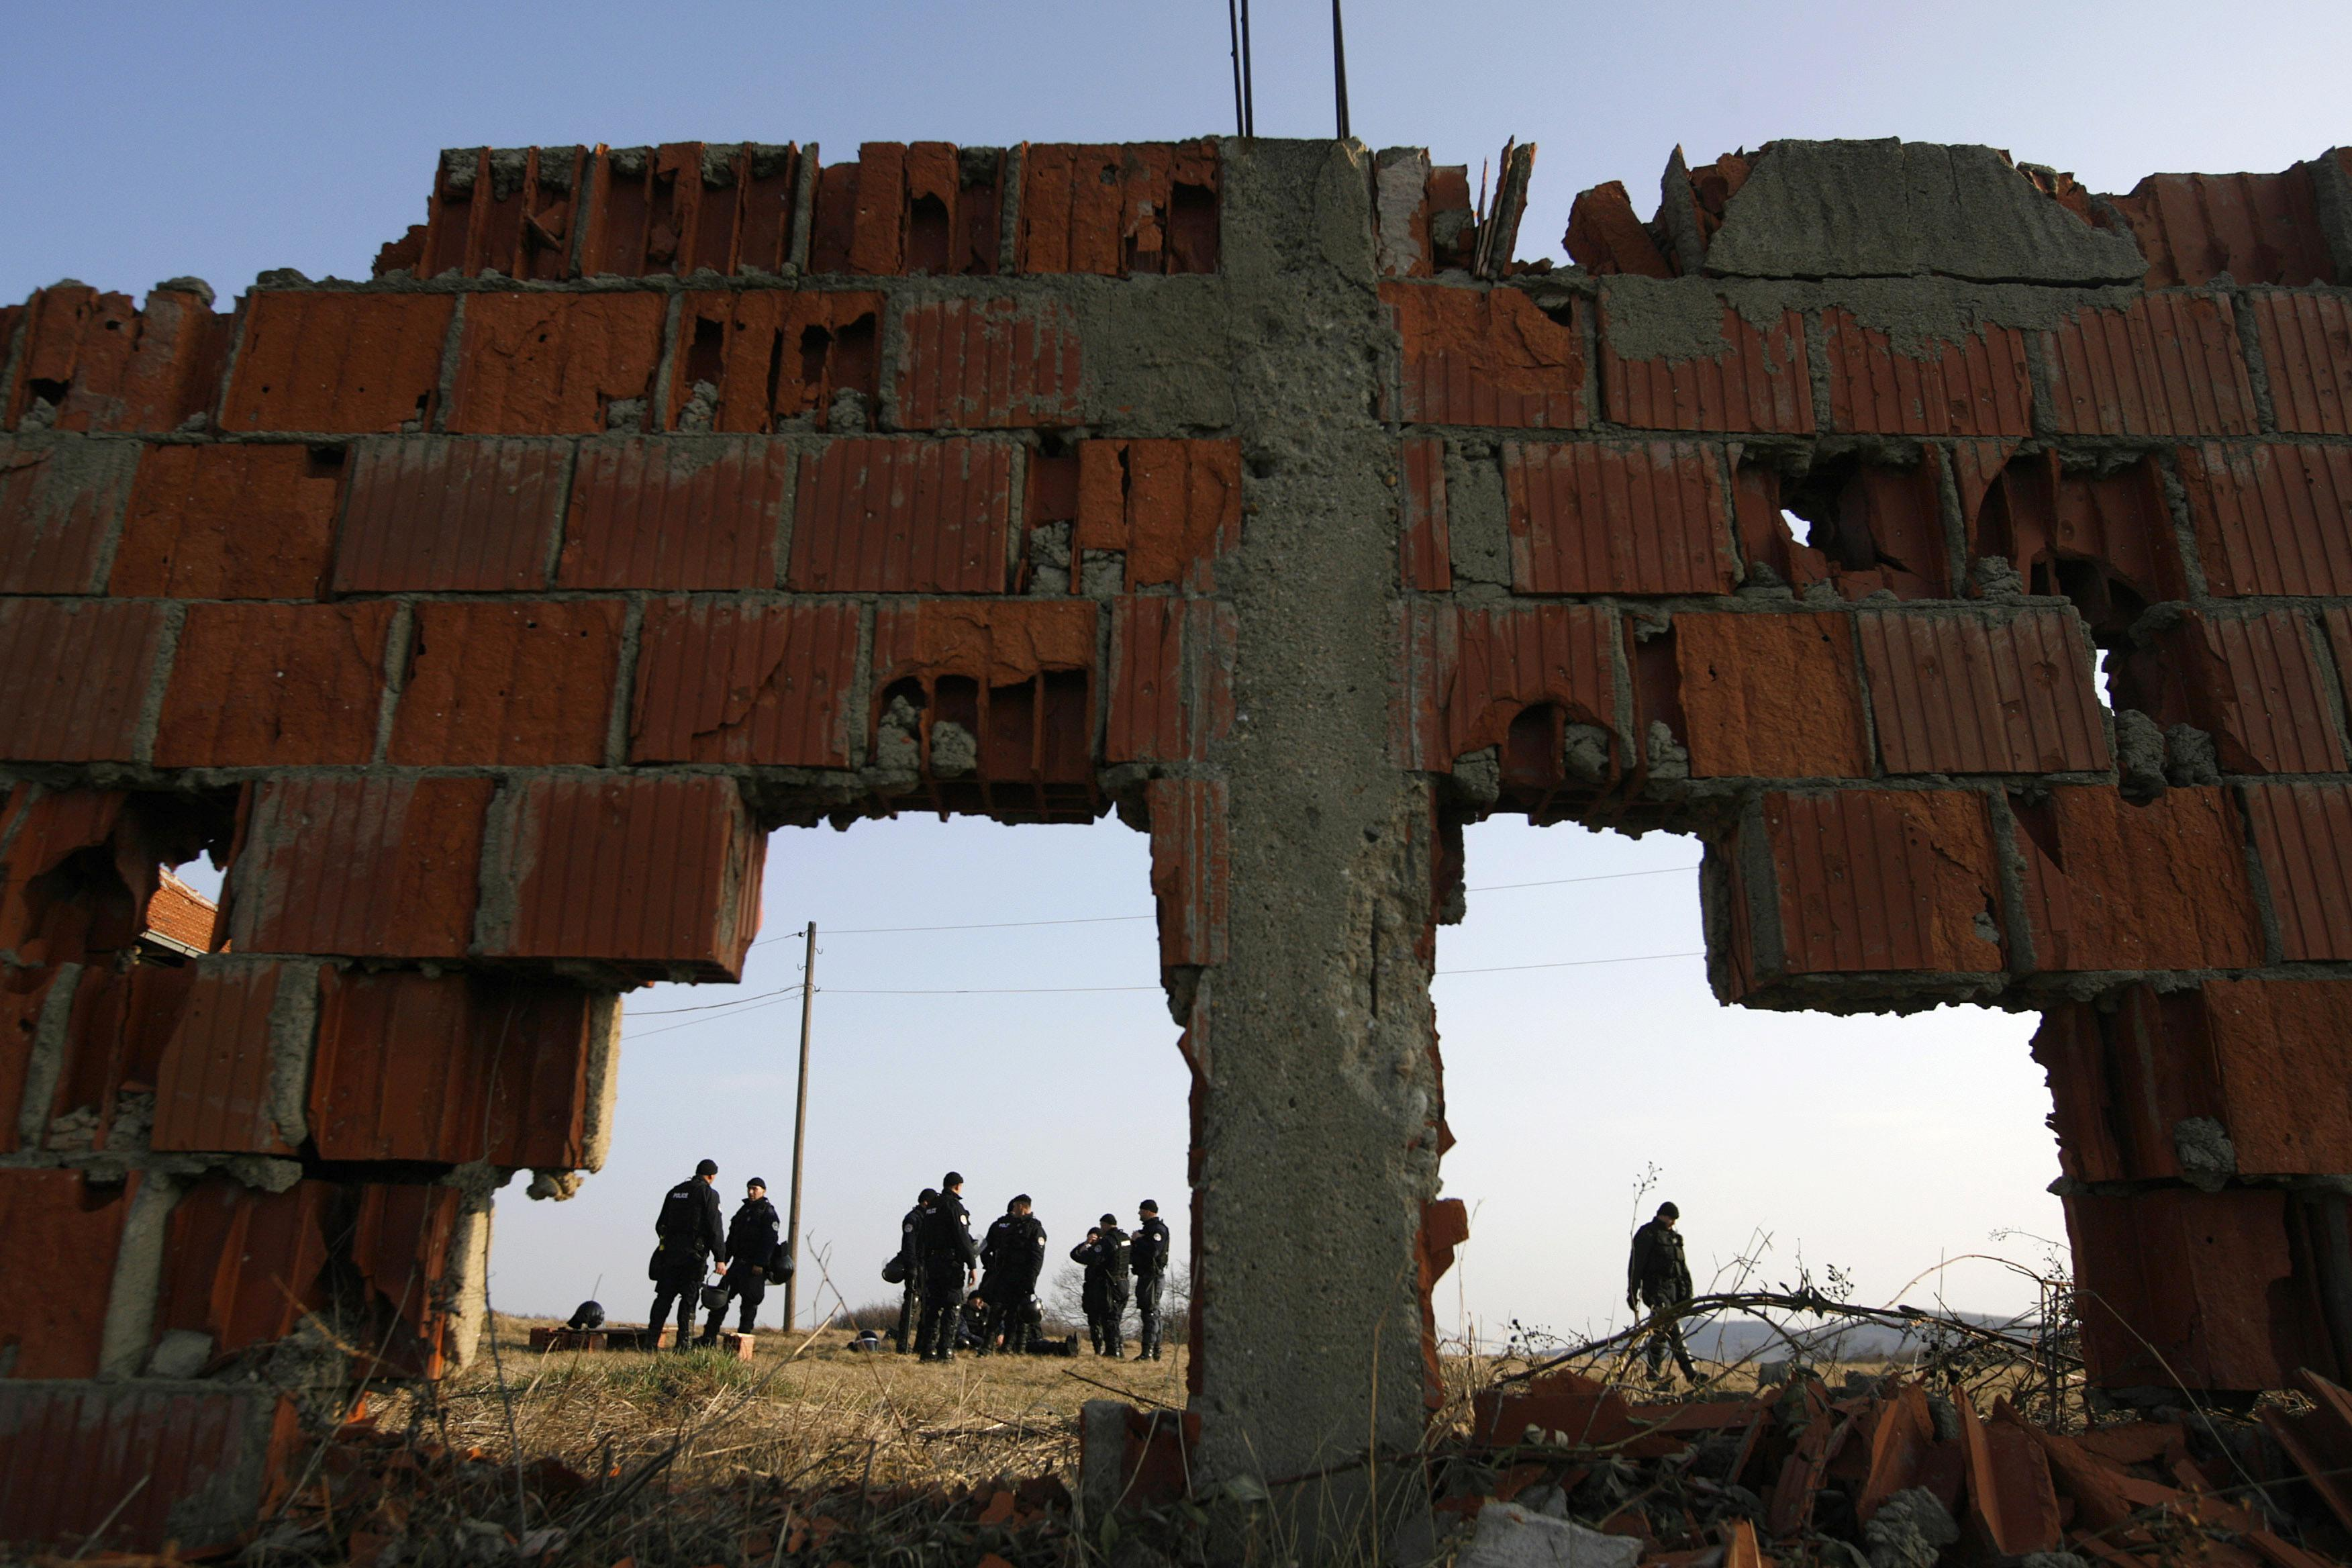 Kosovo riot policemen are seen on Thursday through a damaged wall as they